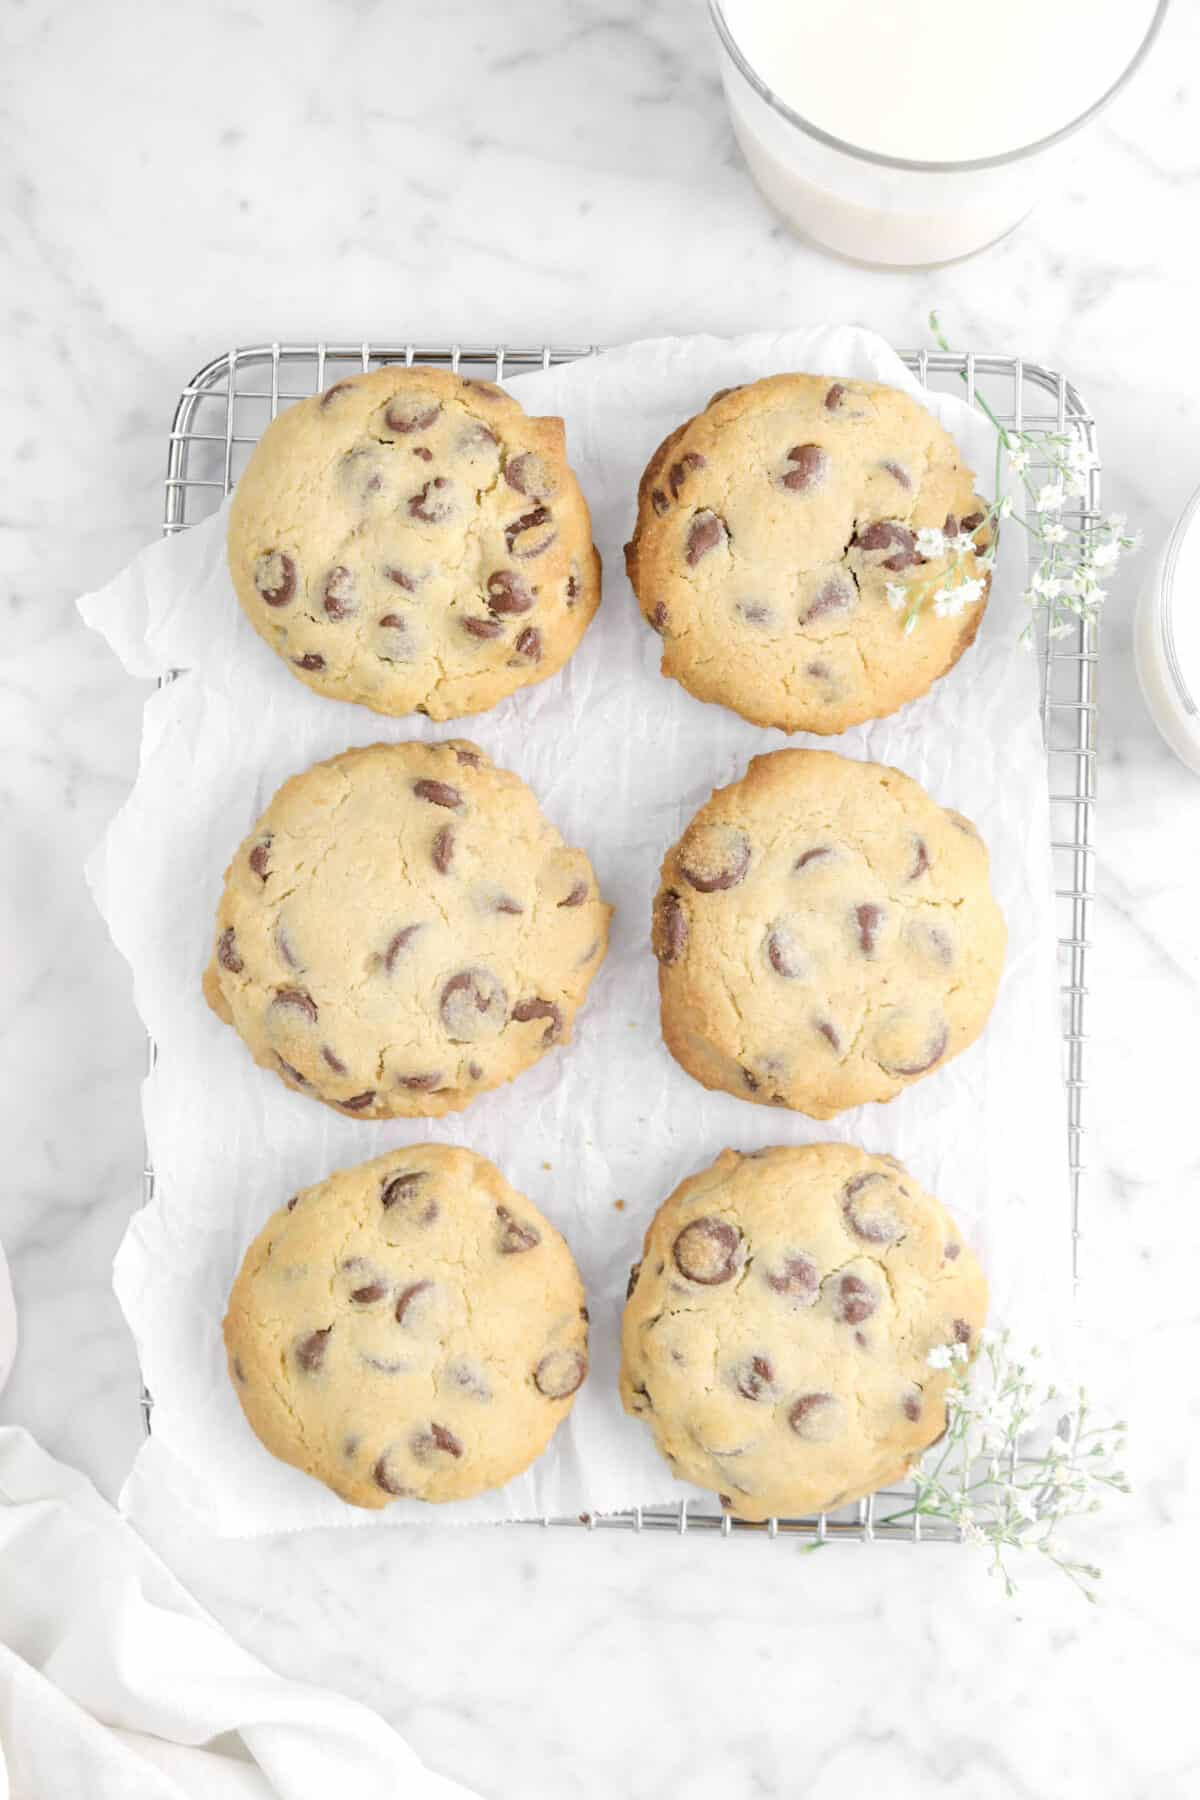 six chocolate chip cookies on a wire cooling rack with flowers and two glasses of milk